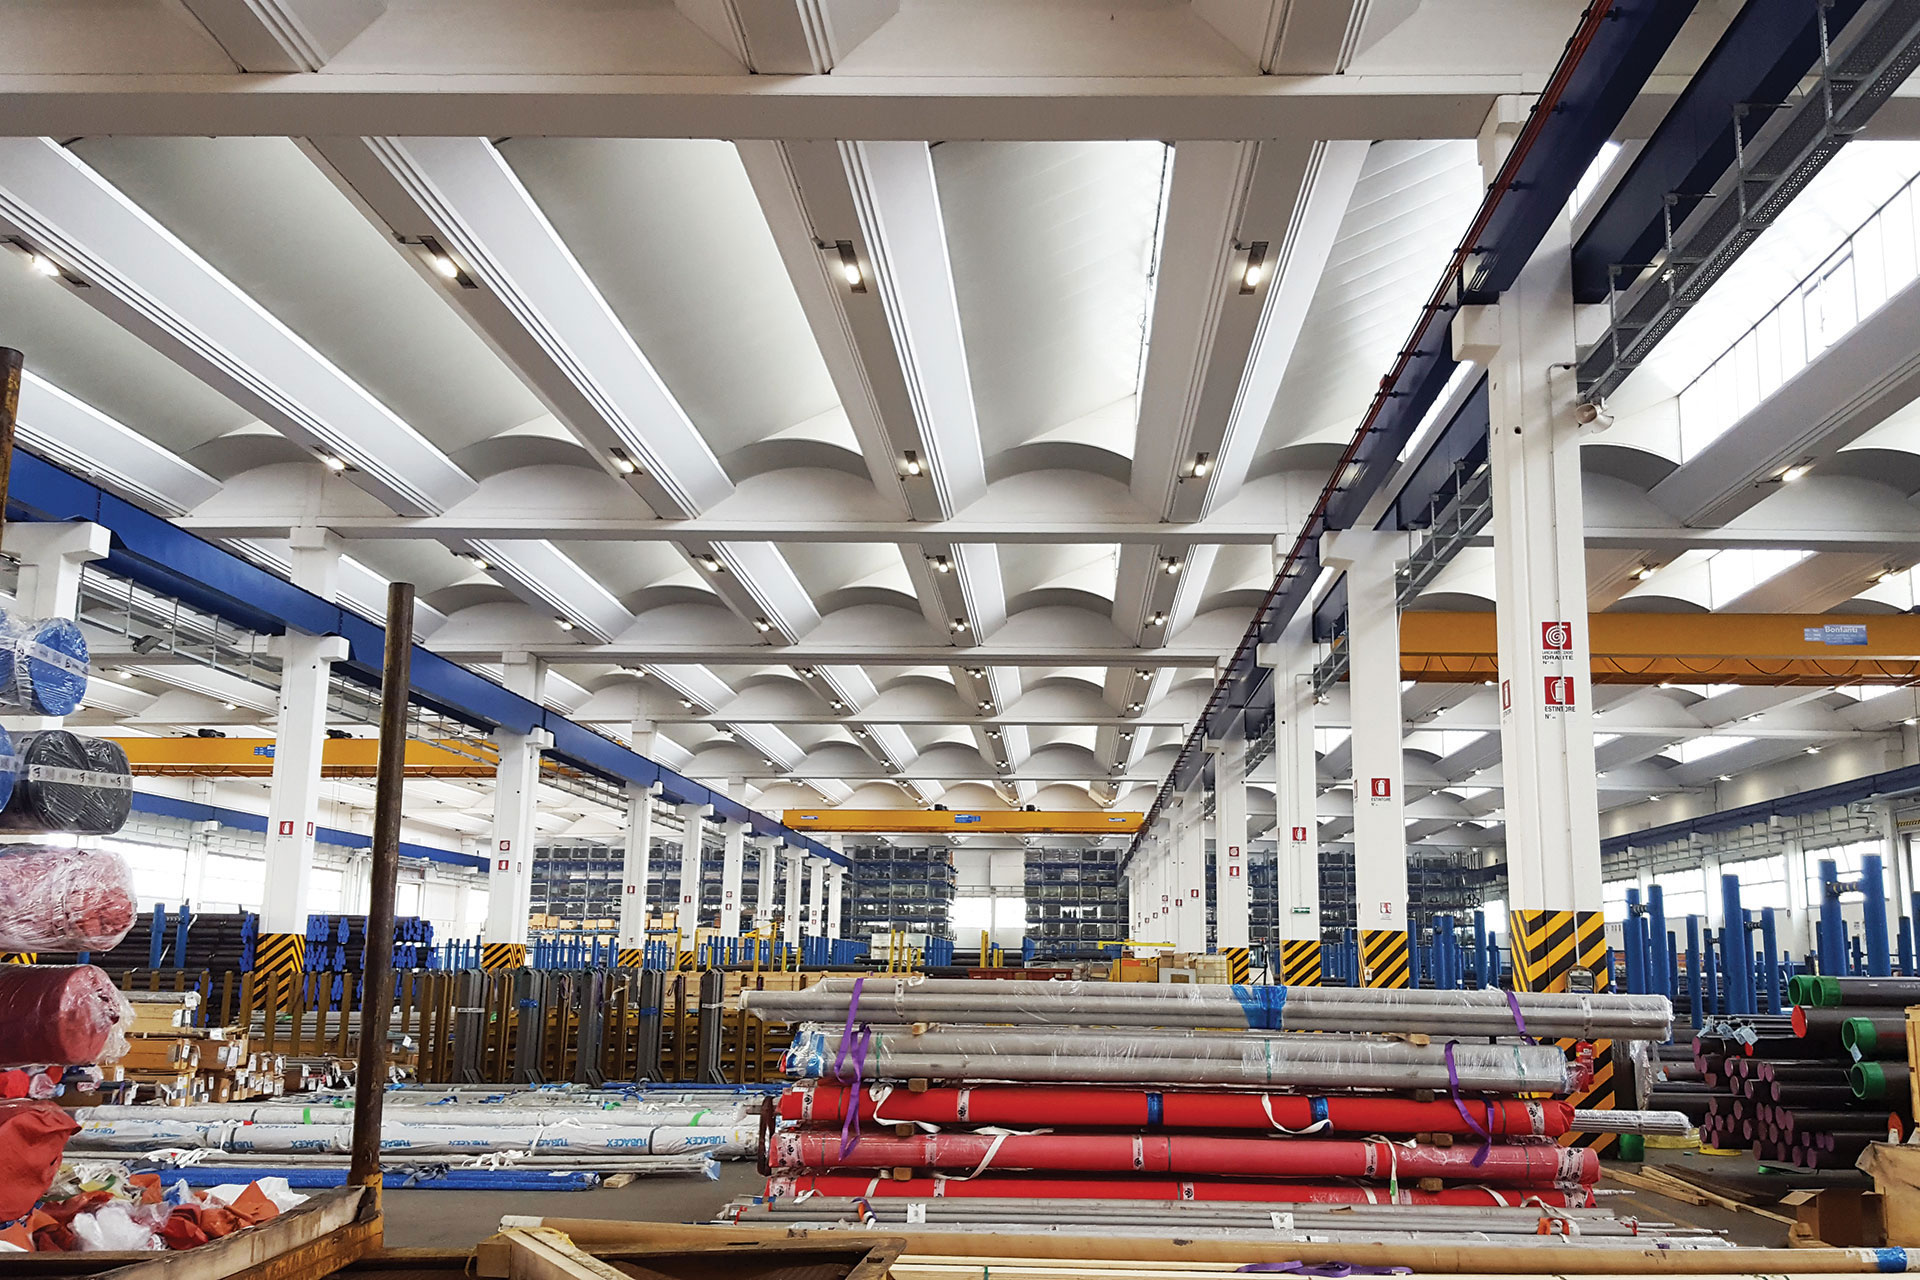 Cuts Operating Costs For Cta Warehouse